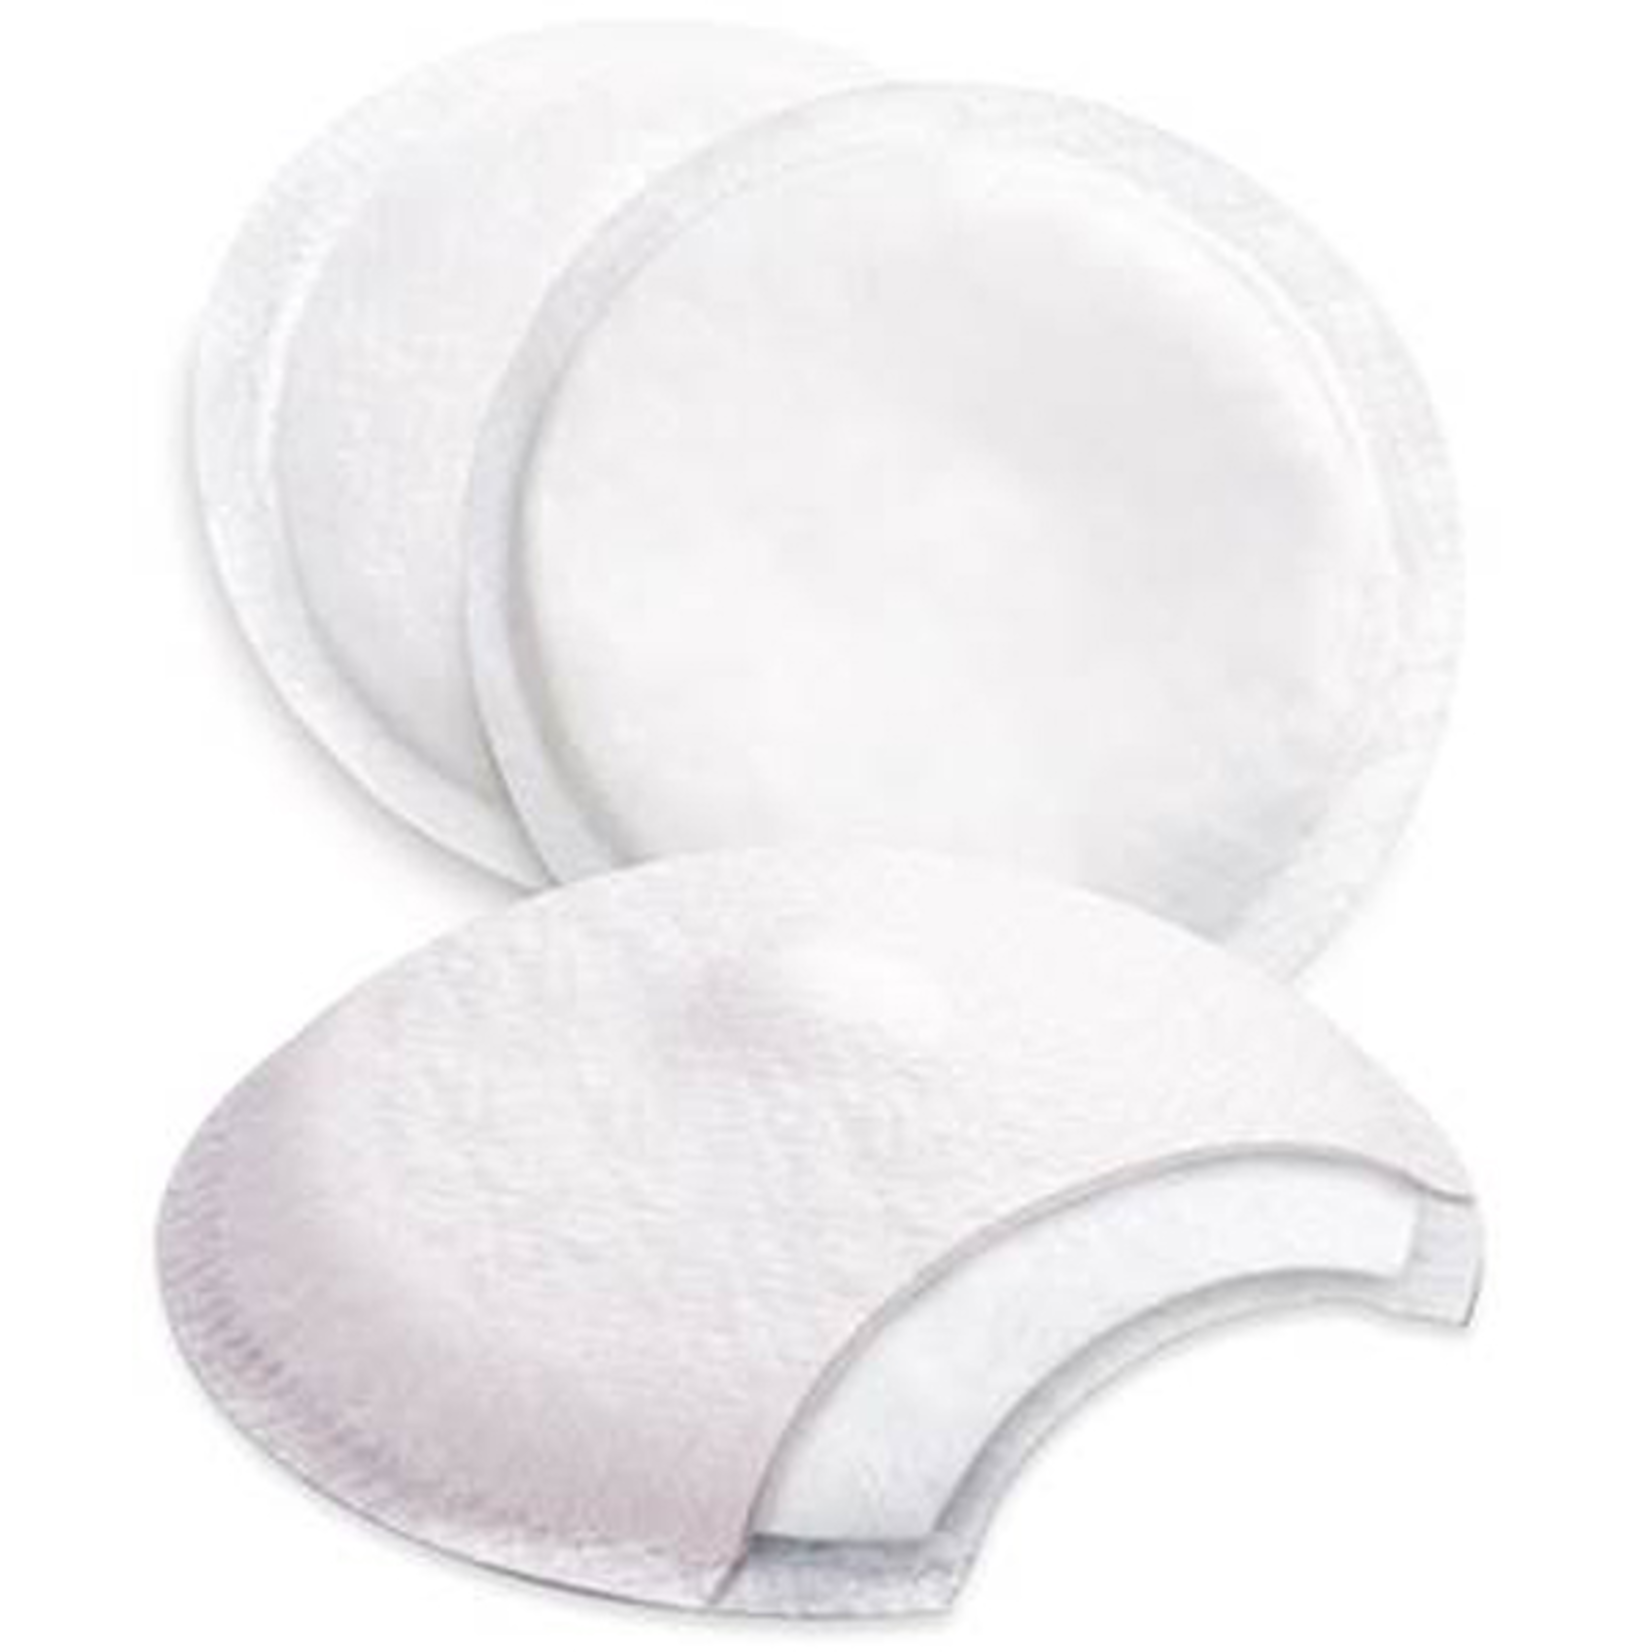 Luvme Luvme Bamboo Eco Disposable Breast Pads